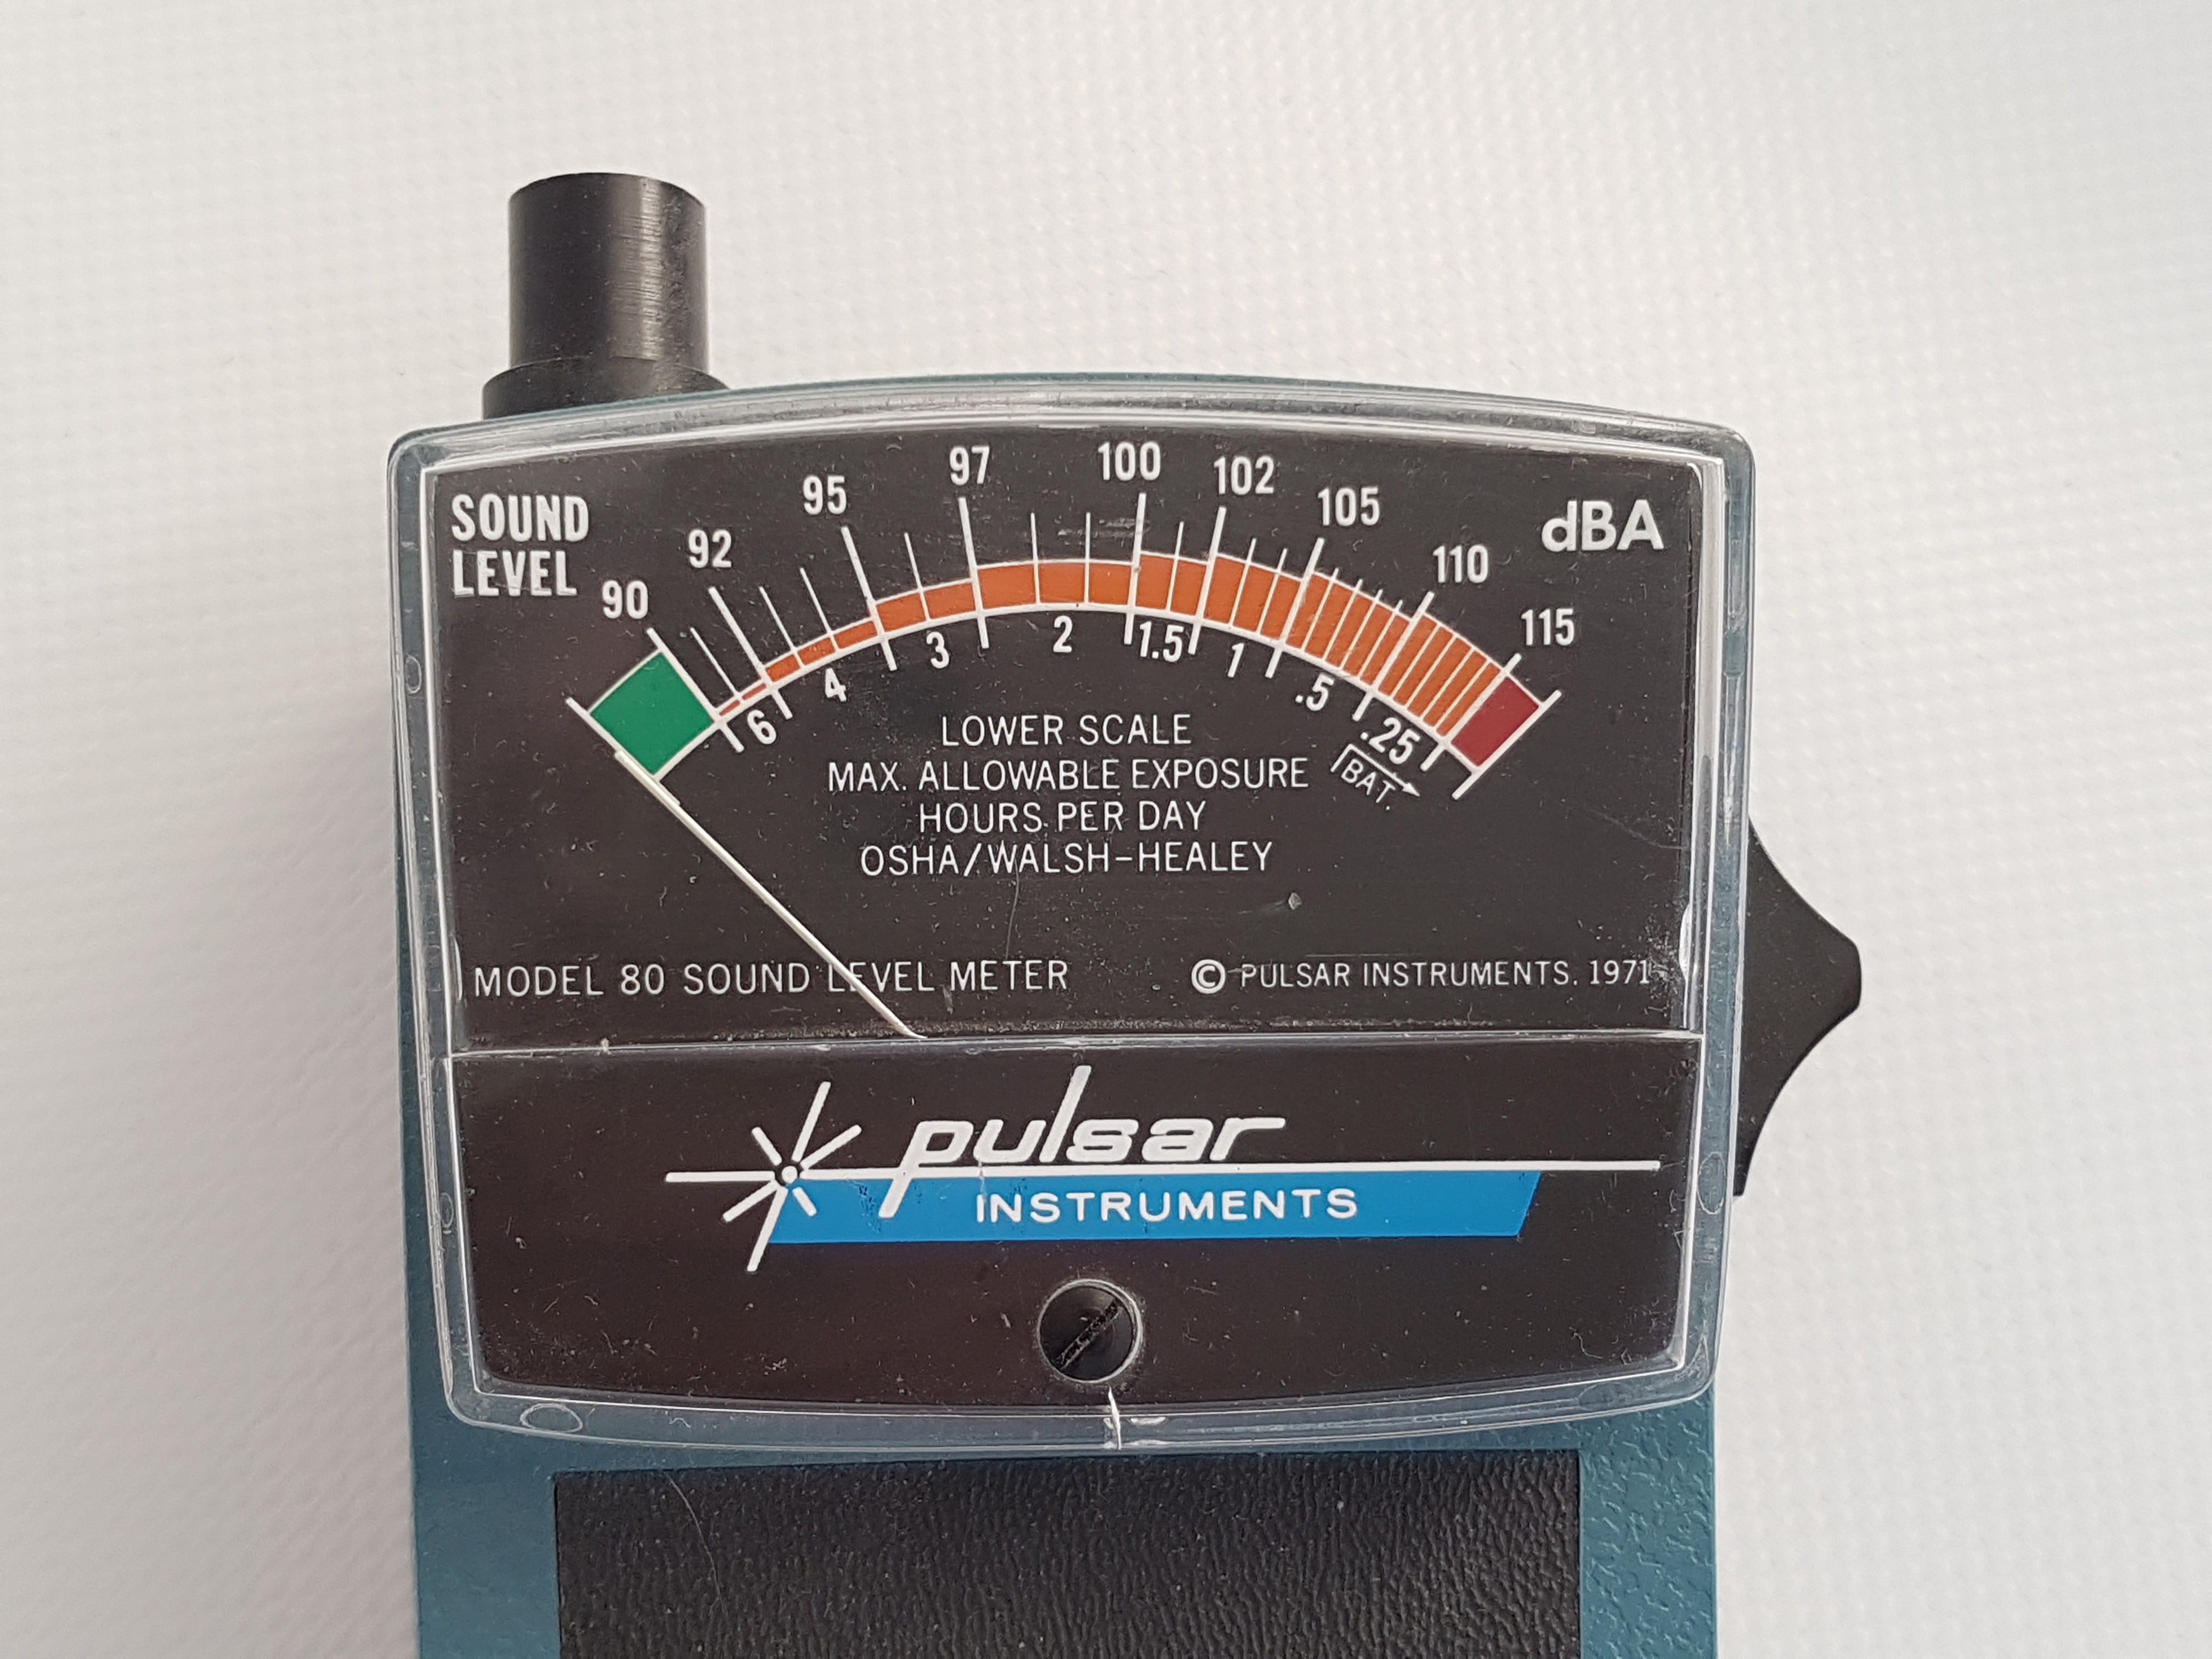 Original meter showing sound exposure times and sound levels